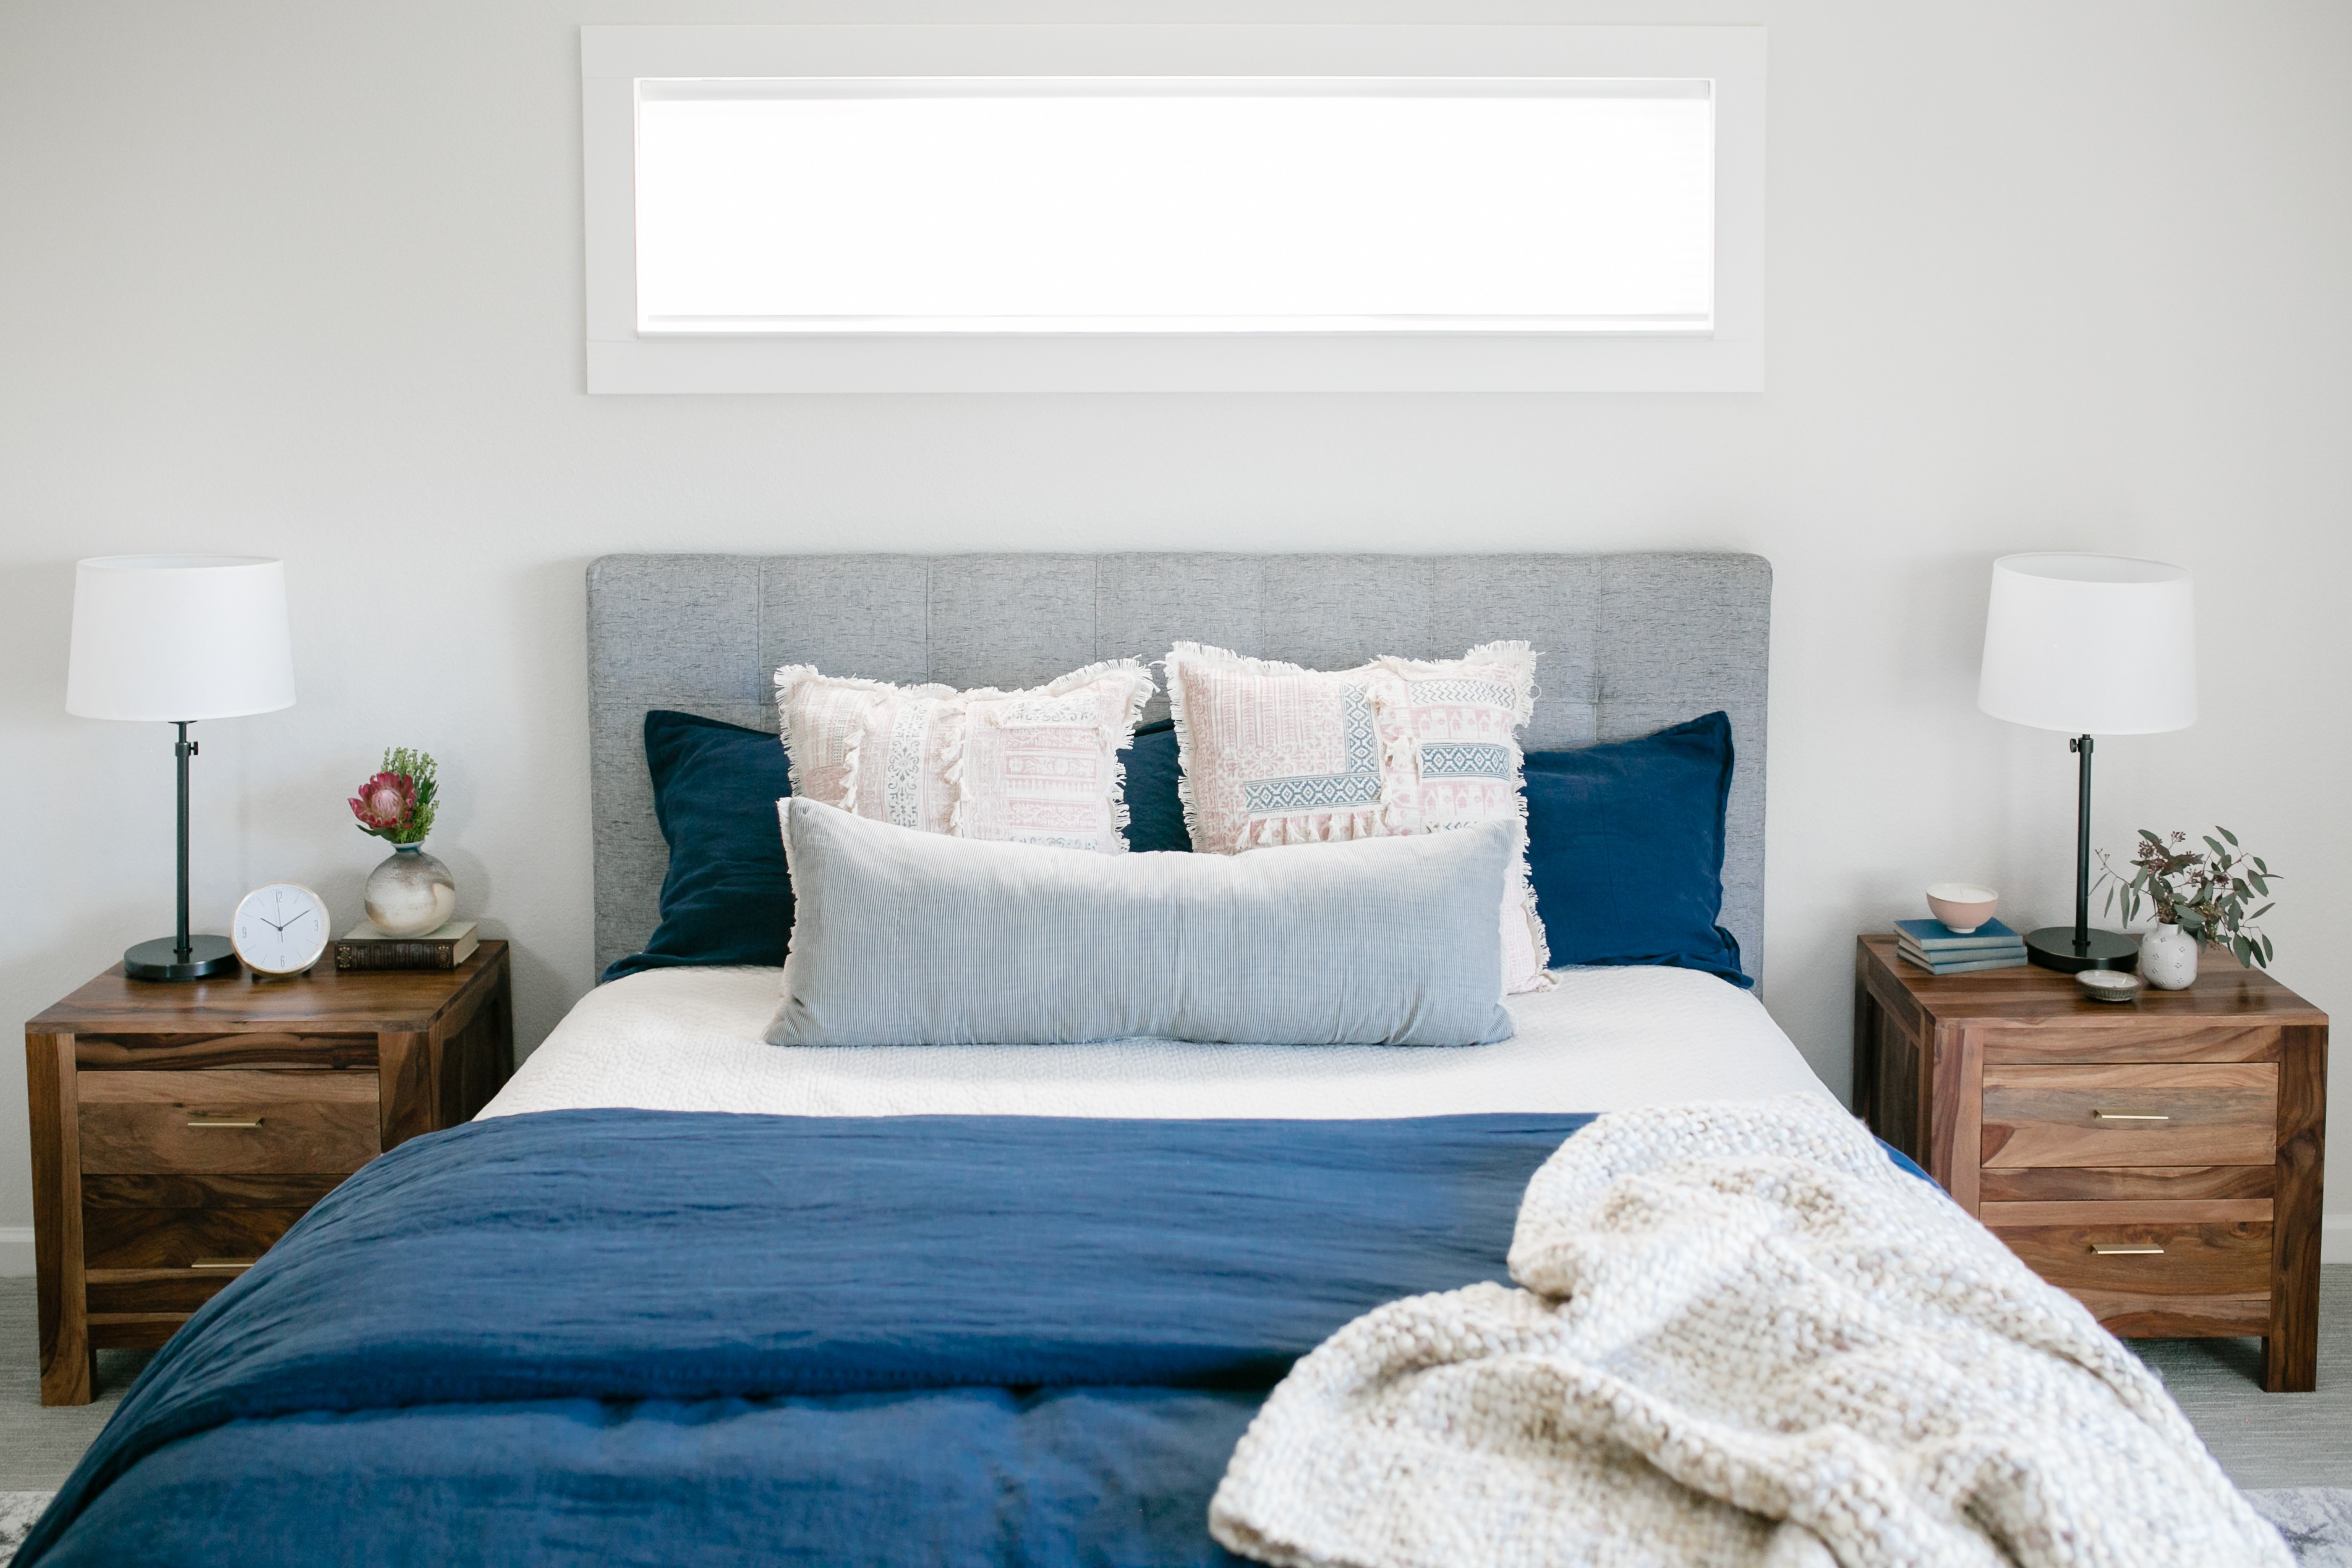 A modern traditional masterbedroom room interior design project by Studio Plumb